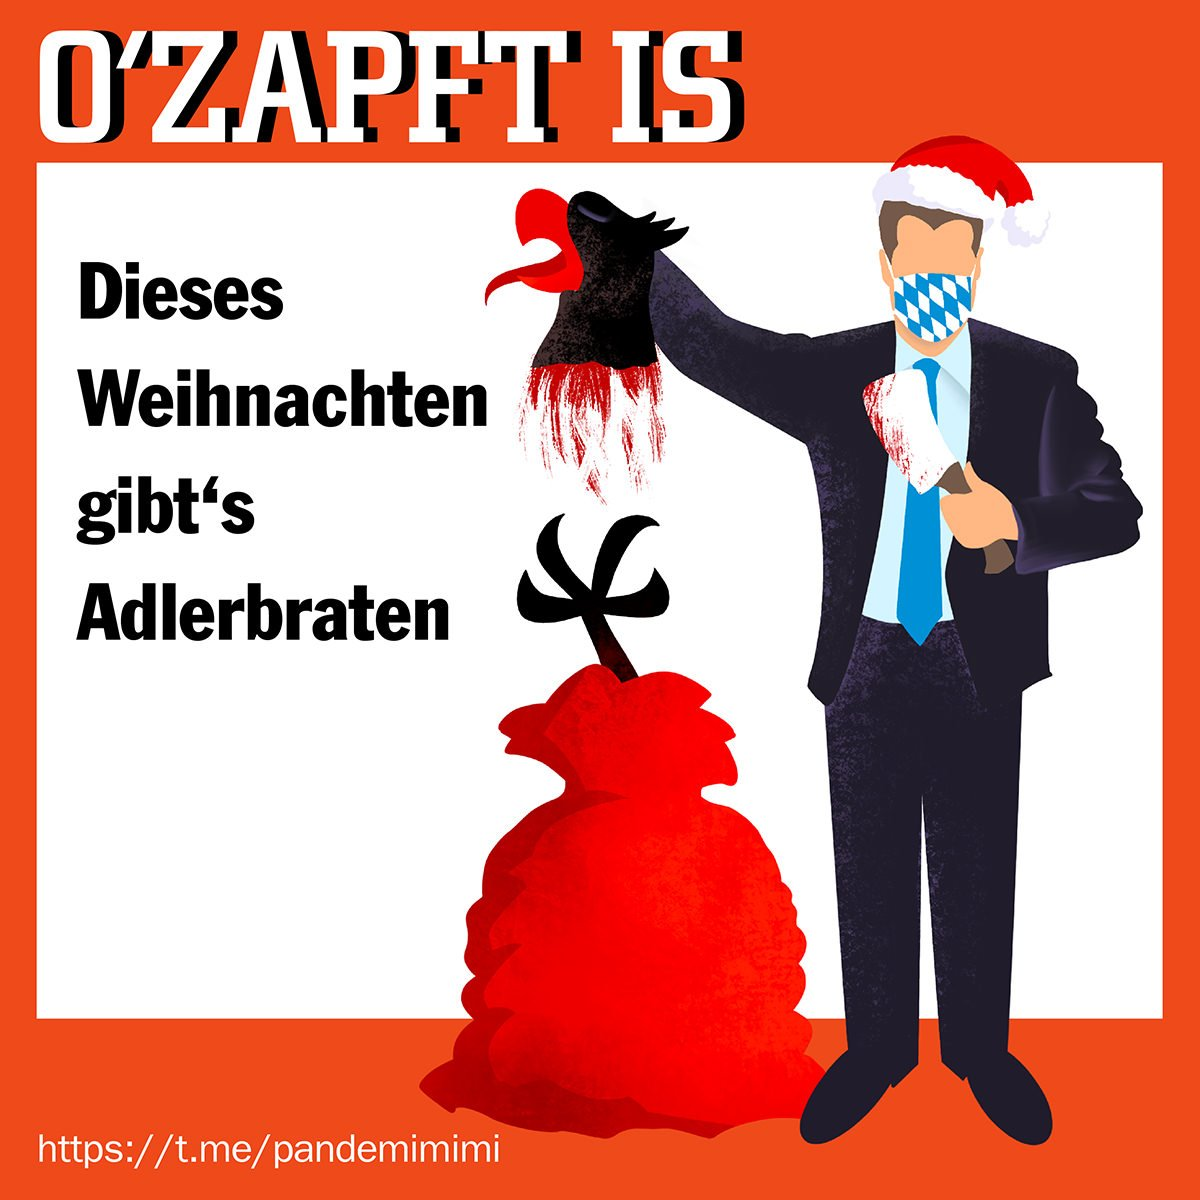 O`zapft is, 07.12.2020